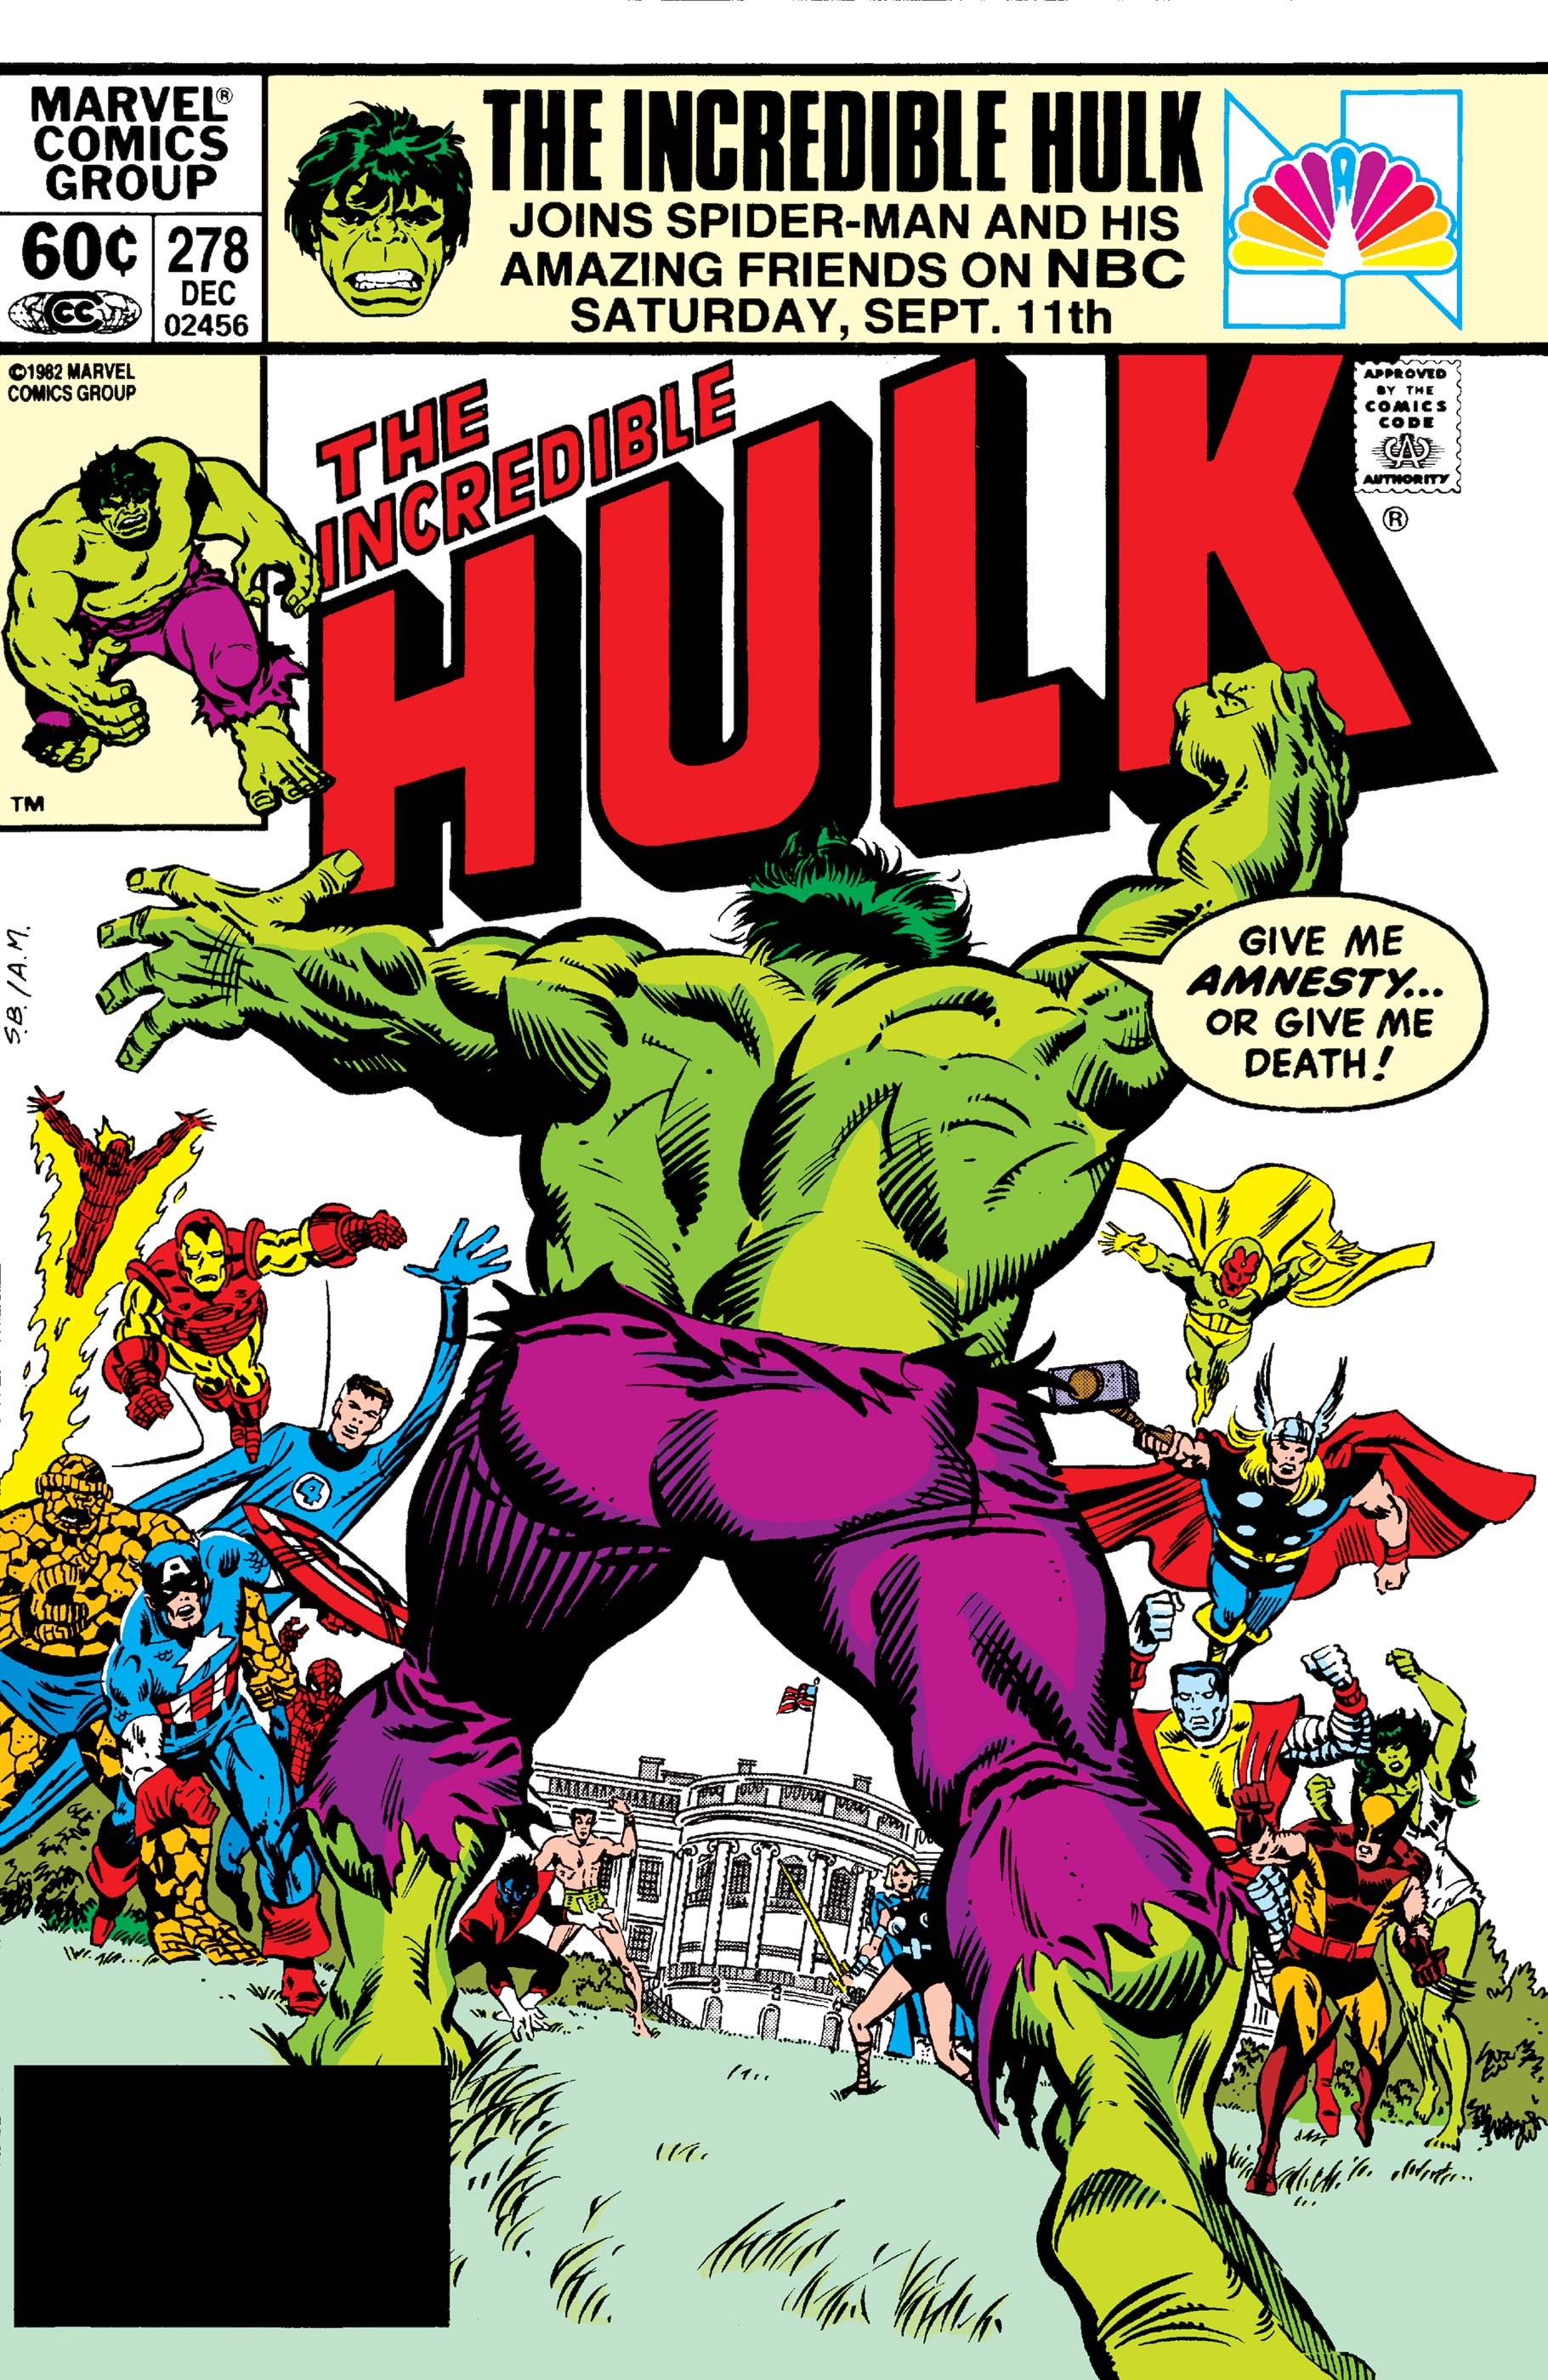 Incredible Hulk (1962) #278